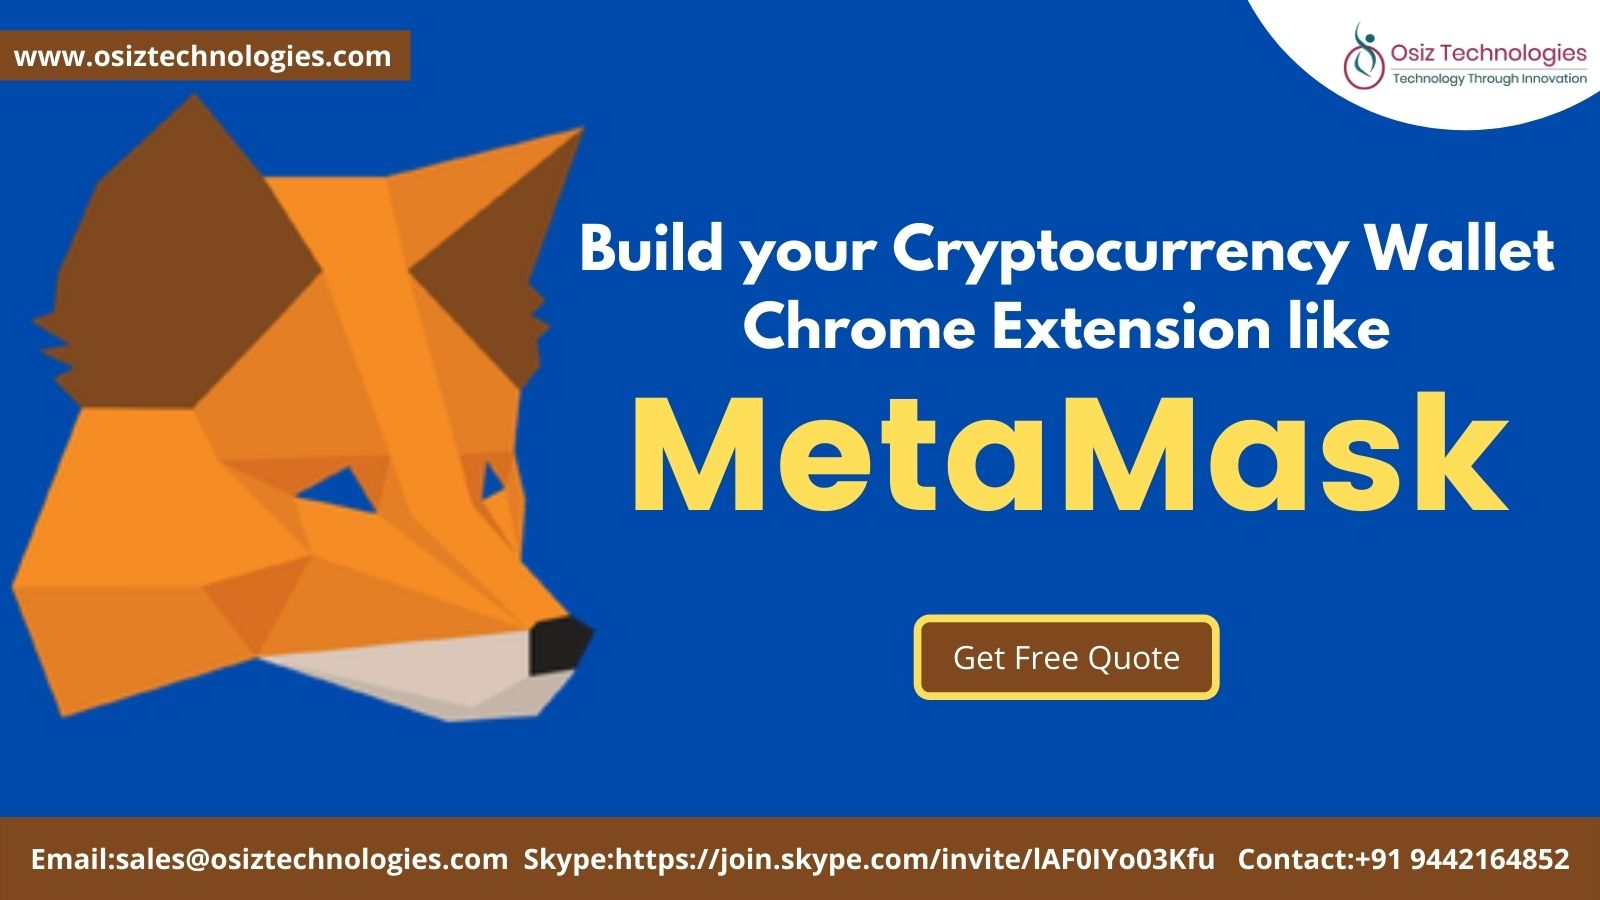 Build your Cryptocurrency Wallet Chrome Extension Like Metamask